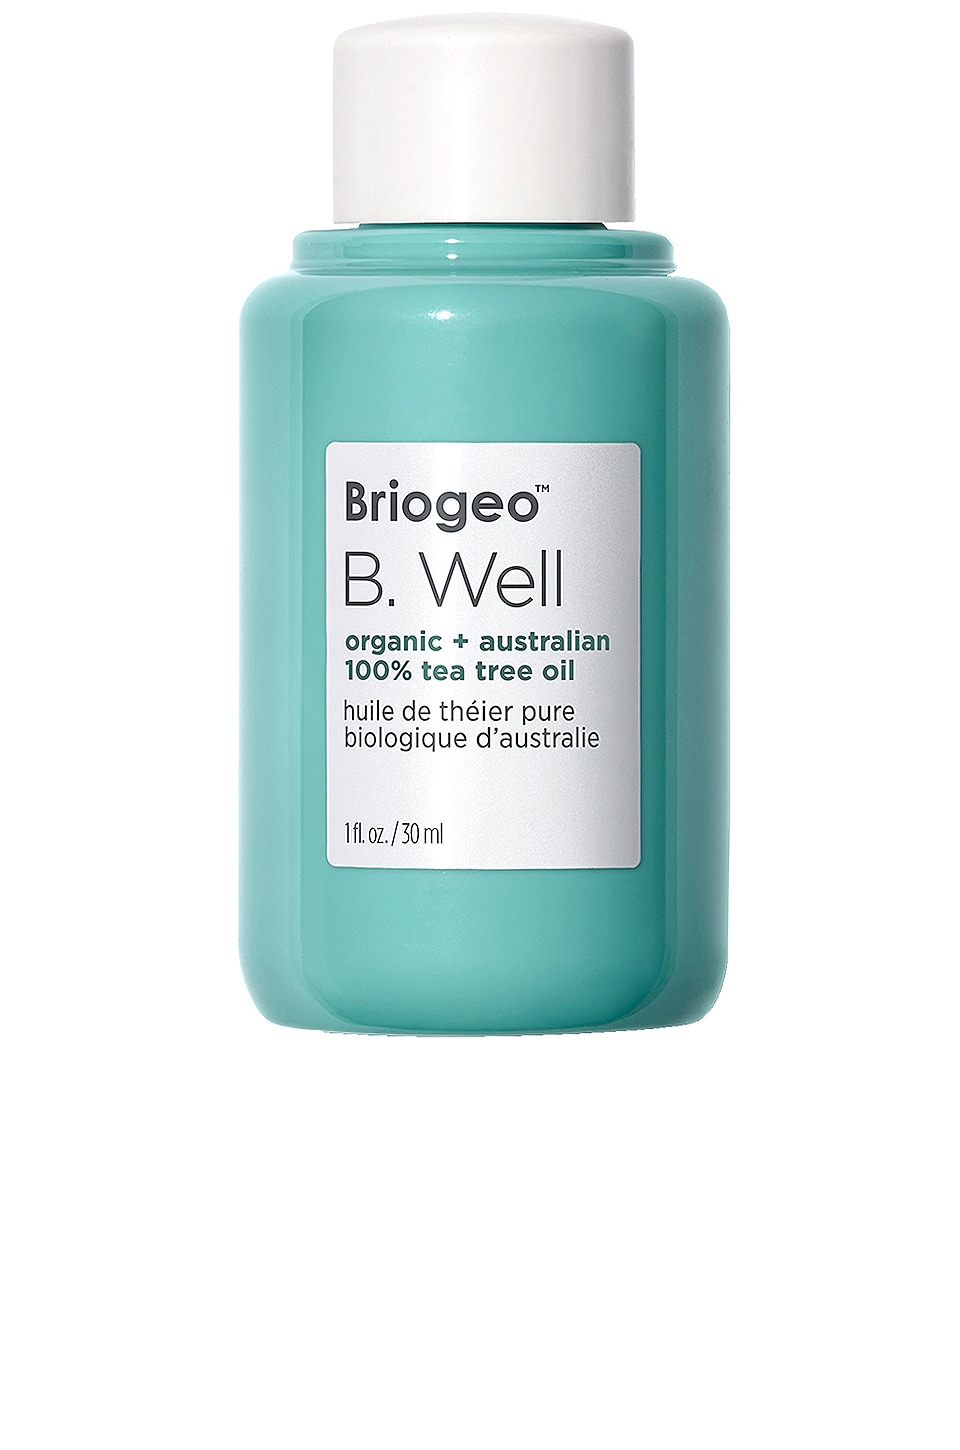 Briogeo B. Well Organic + Australian 100% Tea Tree Oil